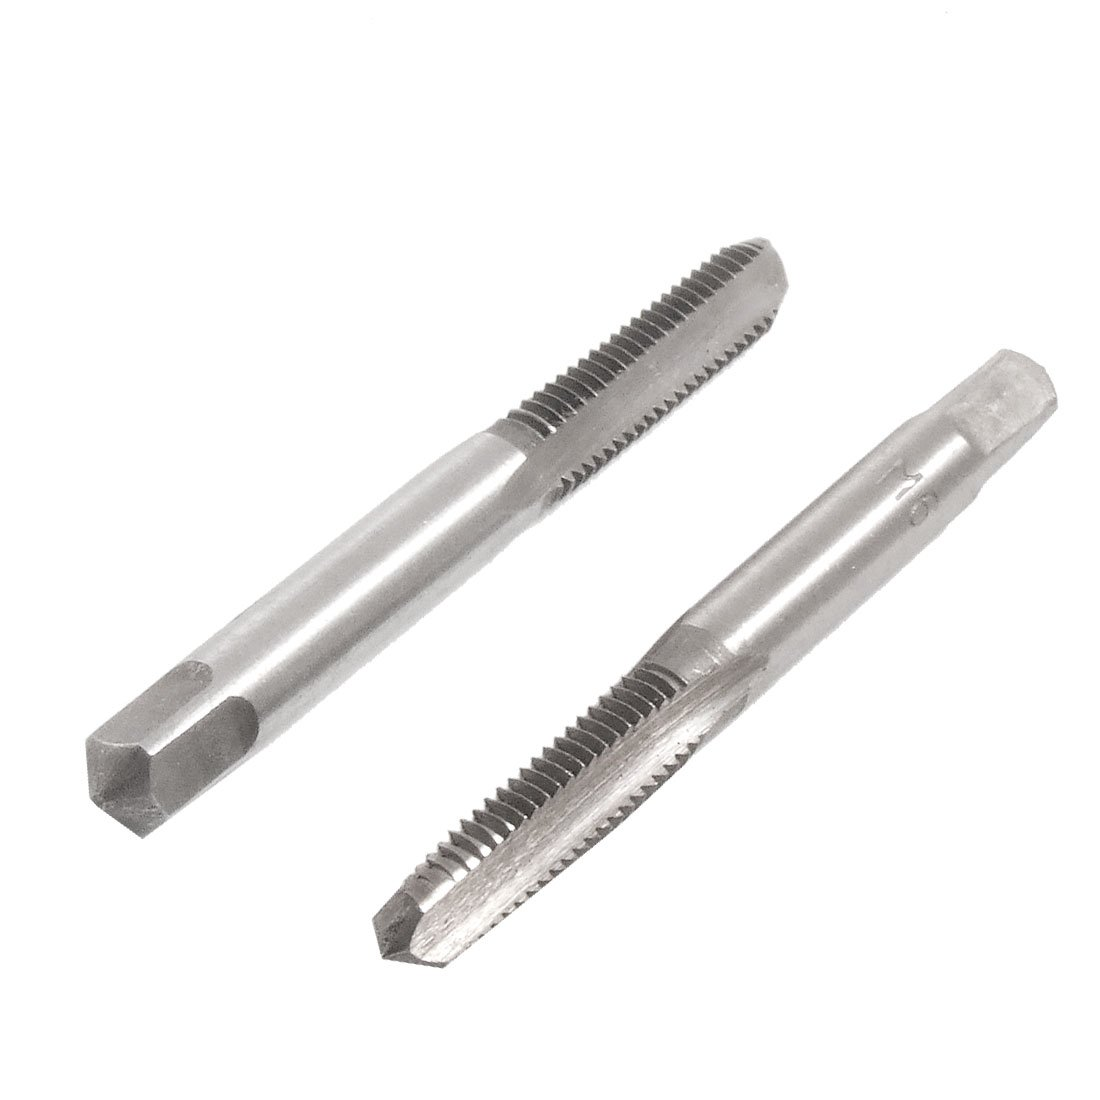 sourcingmap® Pair Round Shank HSS 6mm Dia Threaded Straight Flutes Hand Taps a12050400ux0812